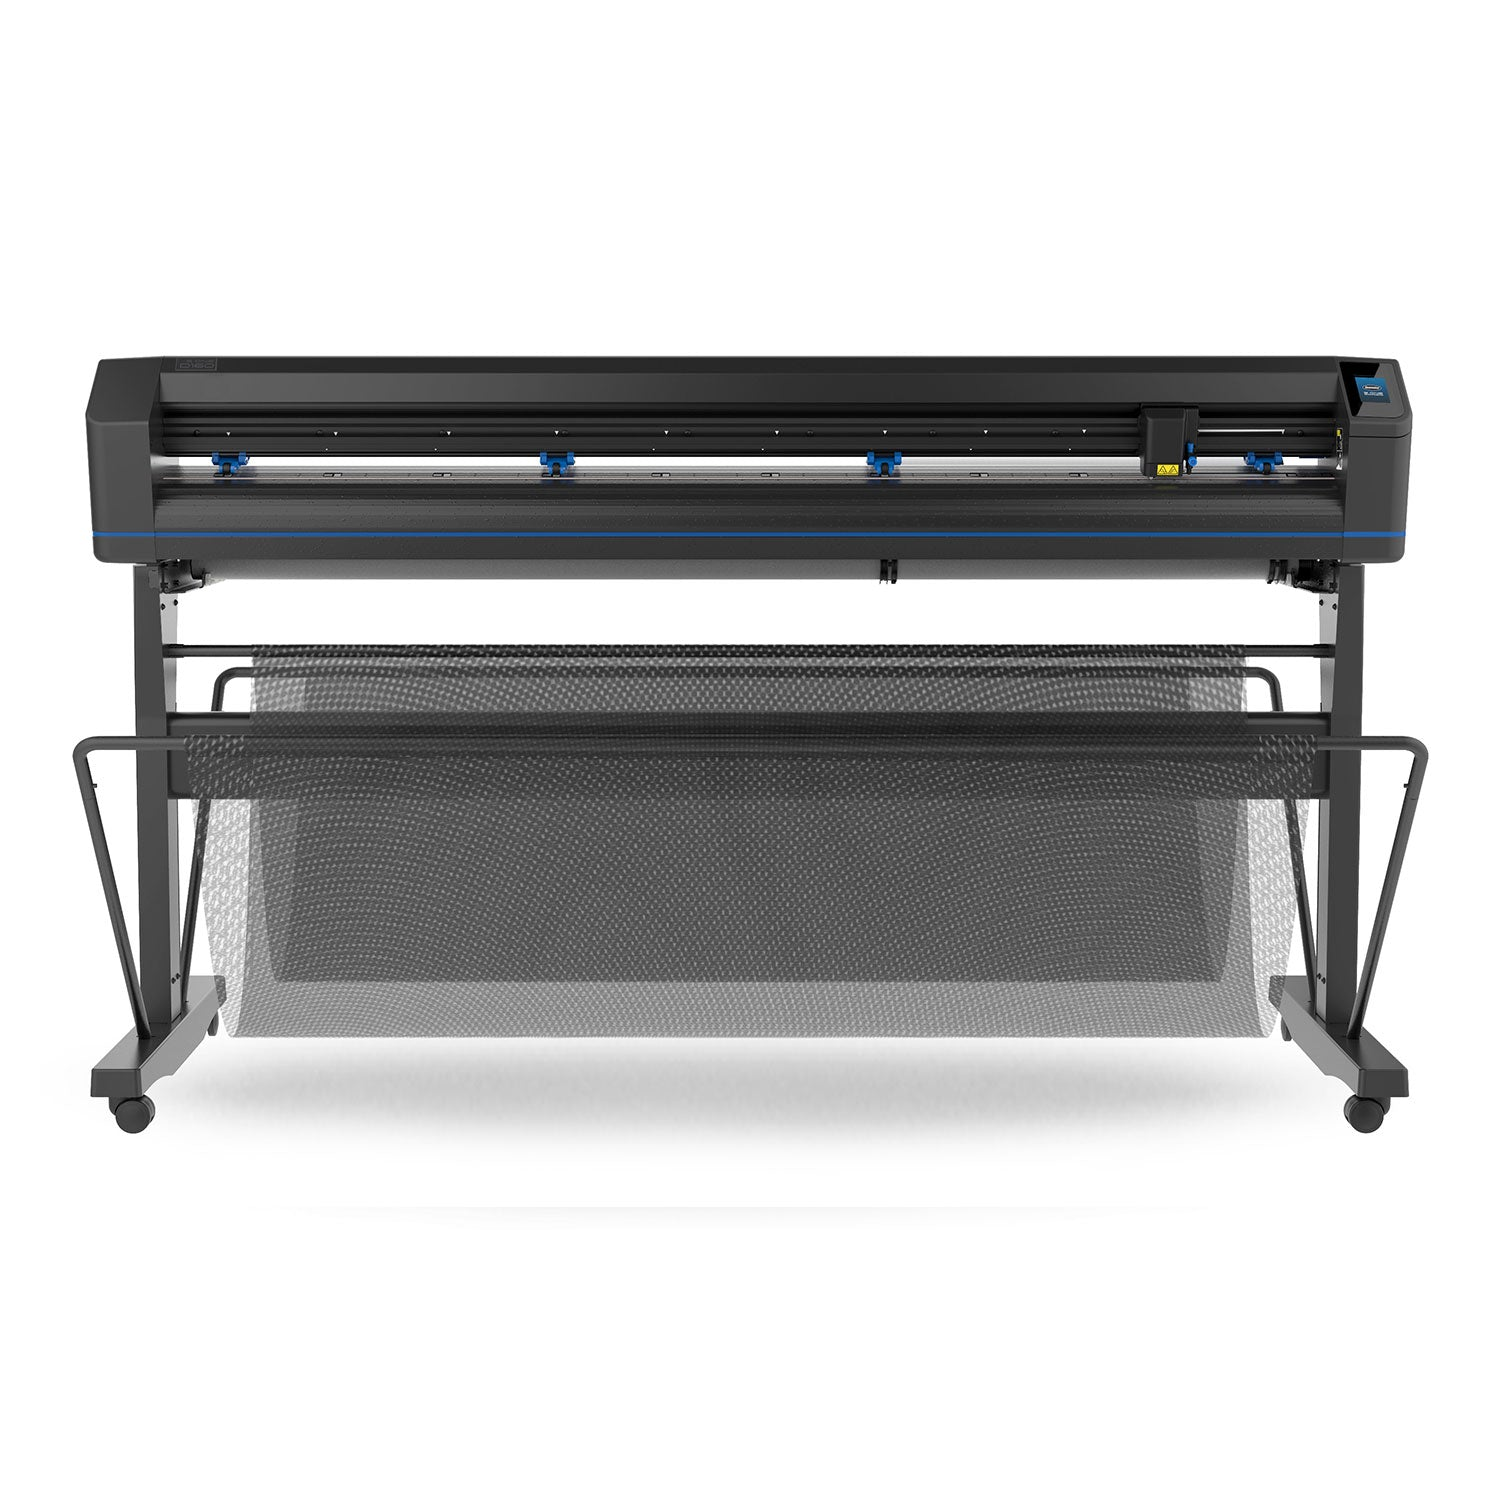 Summa S One D160 Vinyl Cutter